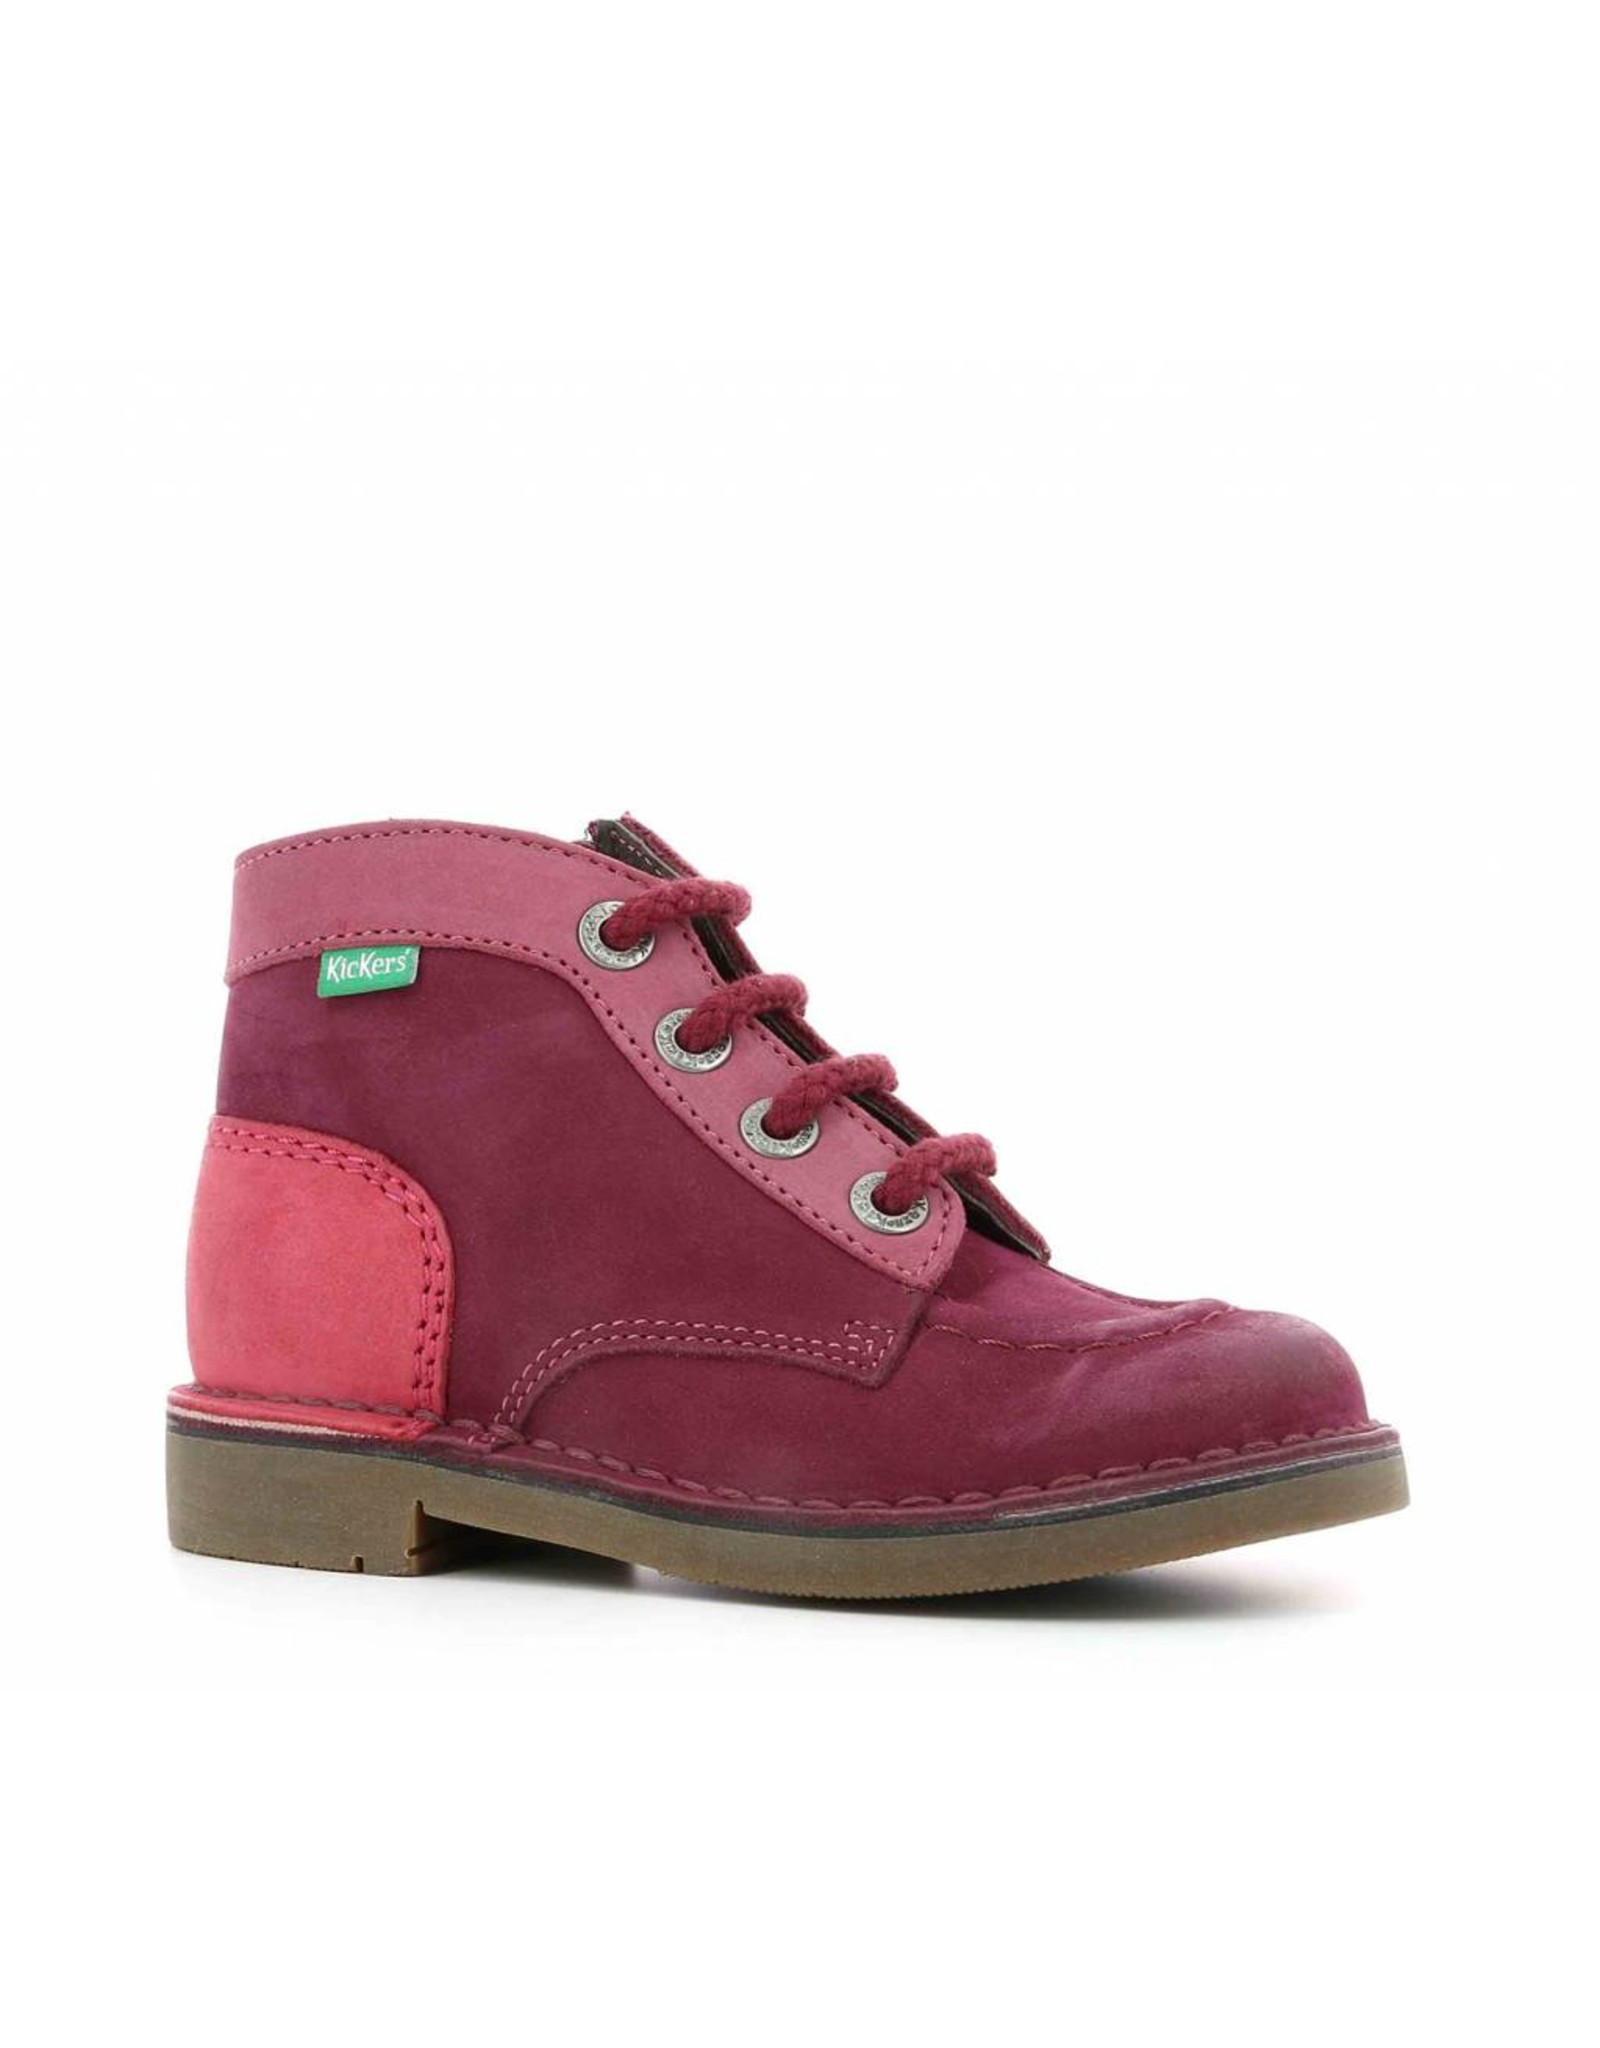 KICKERS KICK COLZ BORDEAUX ROSE KR85BOR 18H440485-30